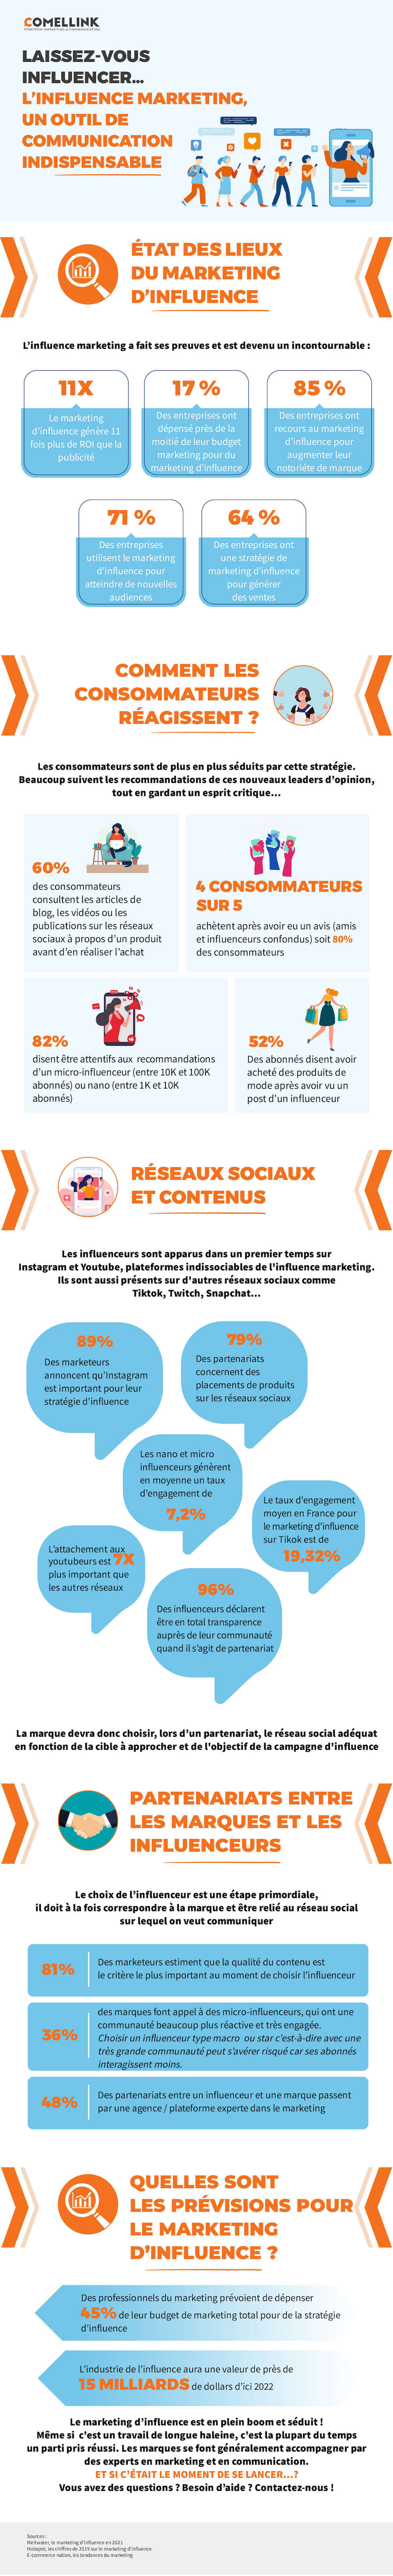 Infographie marketing d'influence Comellink